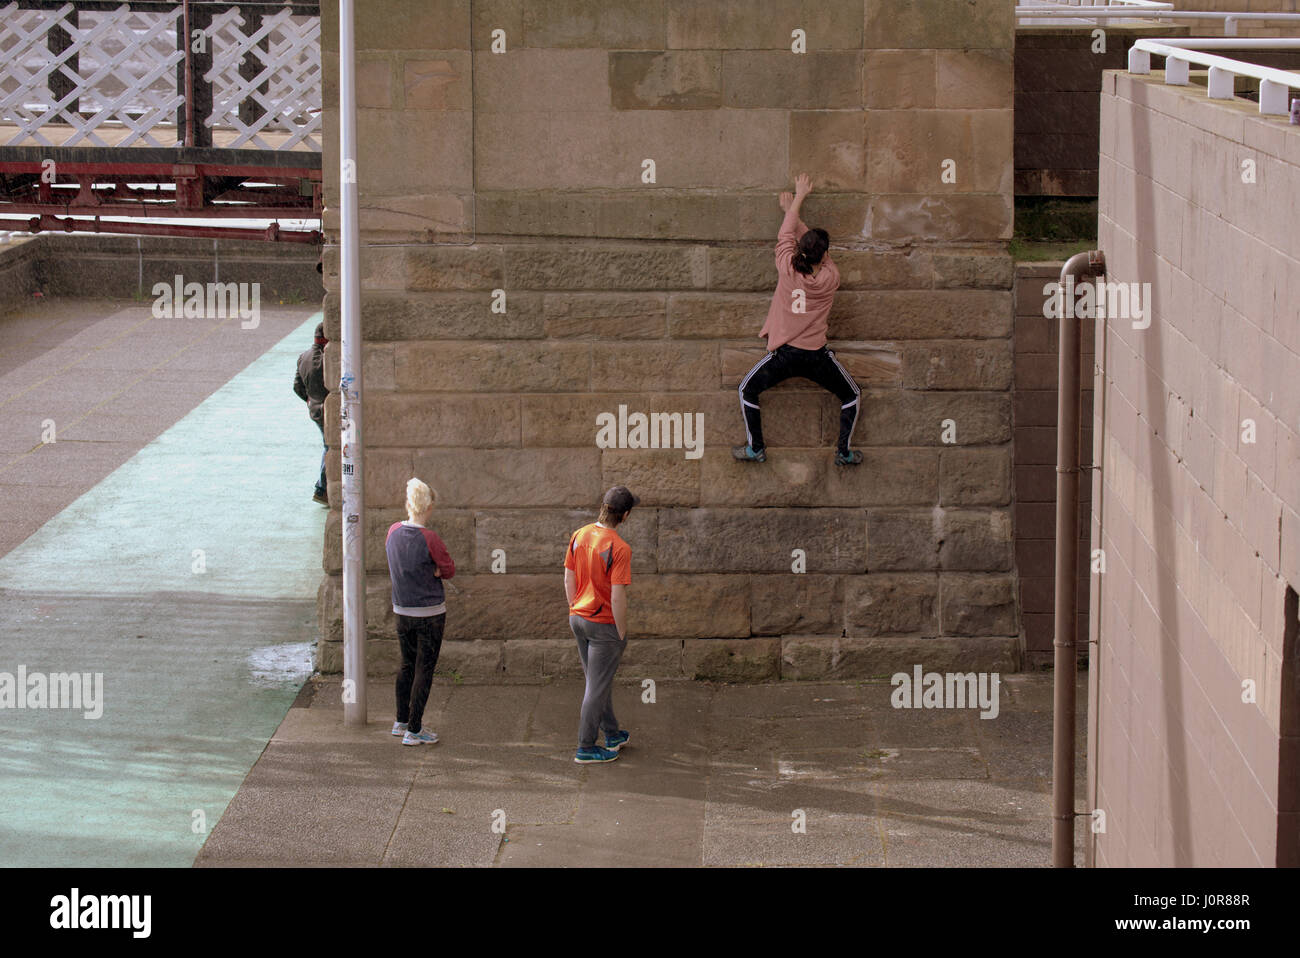 outdoors parkour climbing young people free style - Stock Image